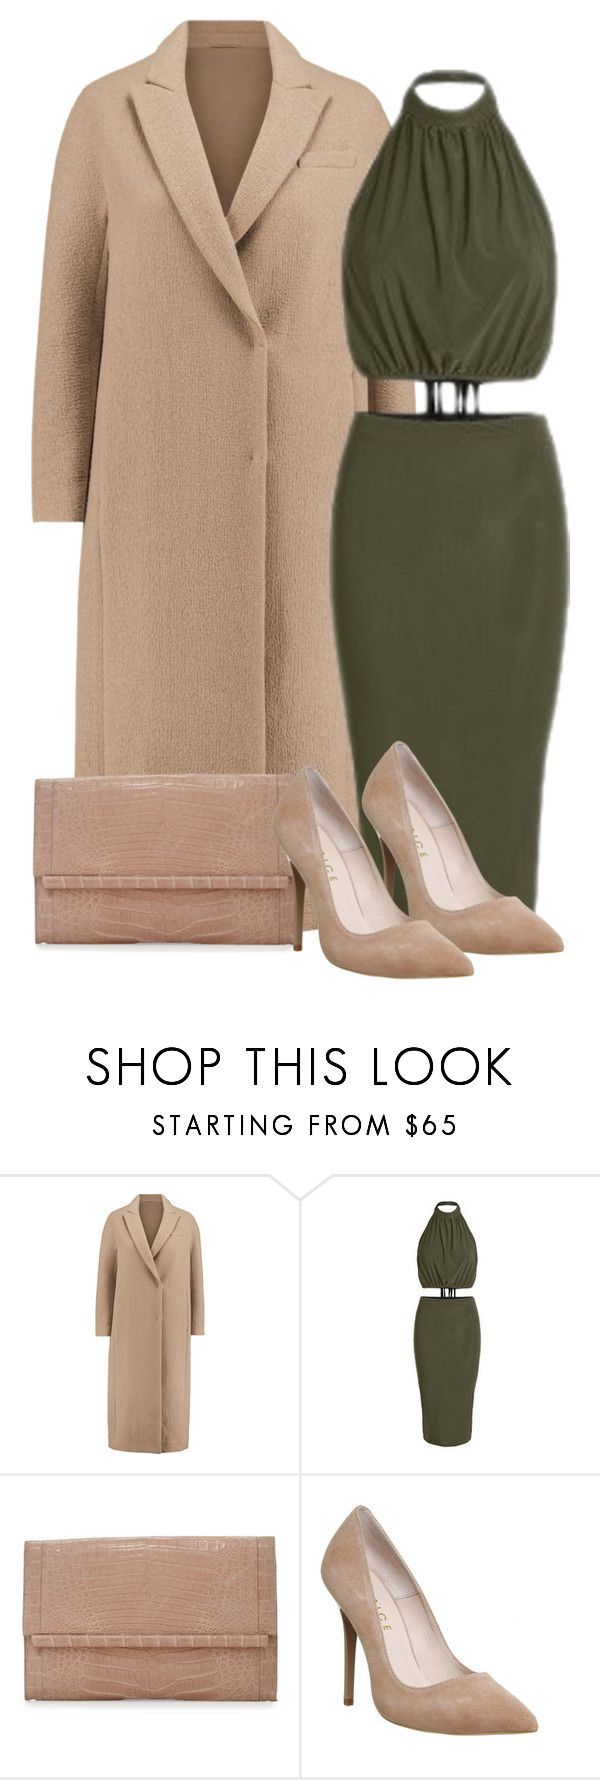 """Untitled #398"" by gabririixx ❤ liked on Polyvore featuring Brunello Cucinelli, Nancy Gonzalez, Office, women's clothing, women, female, woman, misses and juniors"